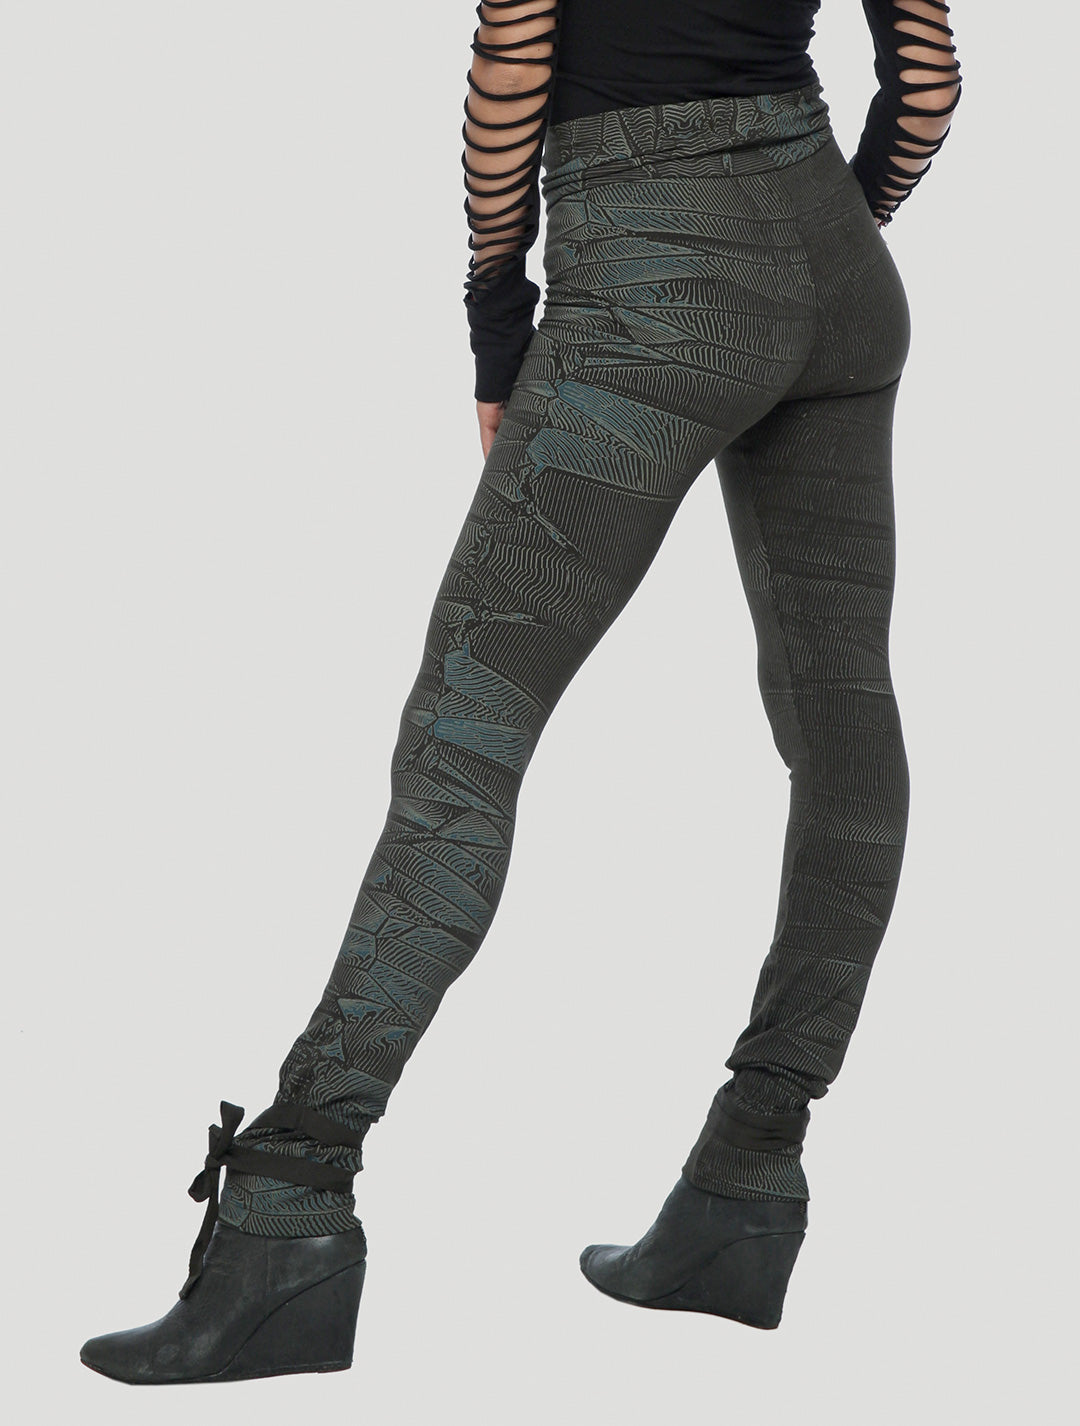 Crystal High Foldover Long Leggings